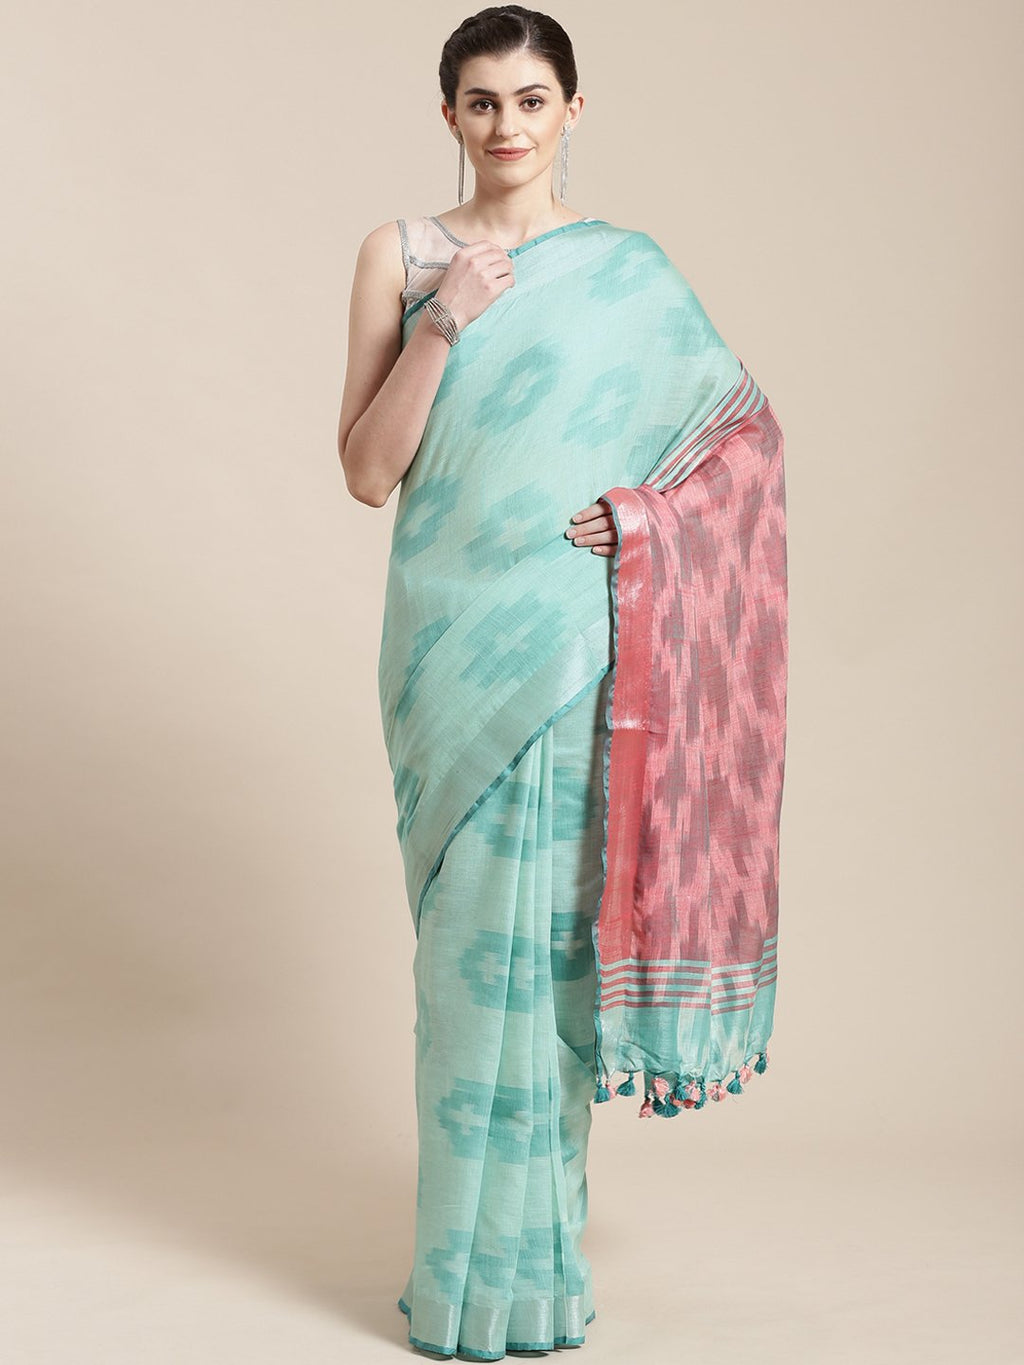 Linen Handwoven Saree and Blouse-Saree-Kalakari India-ALBGSA0033-Hand Woven, Linen, Sarees, Sustainable Fabrics, Traditional Weave-[Linen,Ethnic,wear,Fashionista,Handloom,Handicraft,Indigo,blockprint,block,print,Cotton,Chanderi,Blue, latest,classy,party,bollywood,trendy,summer,style,traditional,formal,elegant,unique,style,hand,block,print, dabu,booti,gift,present,glamorous,affordable,collectible,Sari,Saree,printed, holi, Diwali, birthday, anniversary, sustainable, organic, scarf, online, low pri